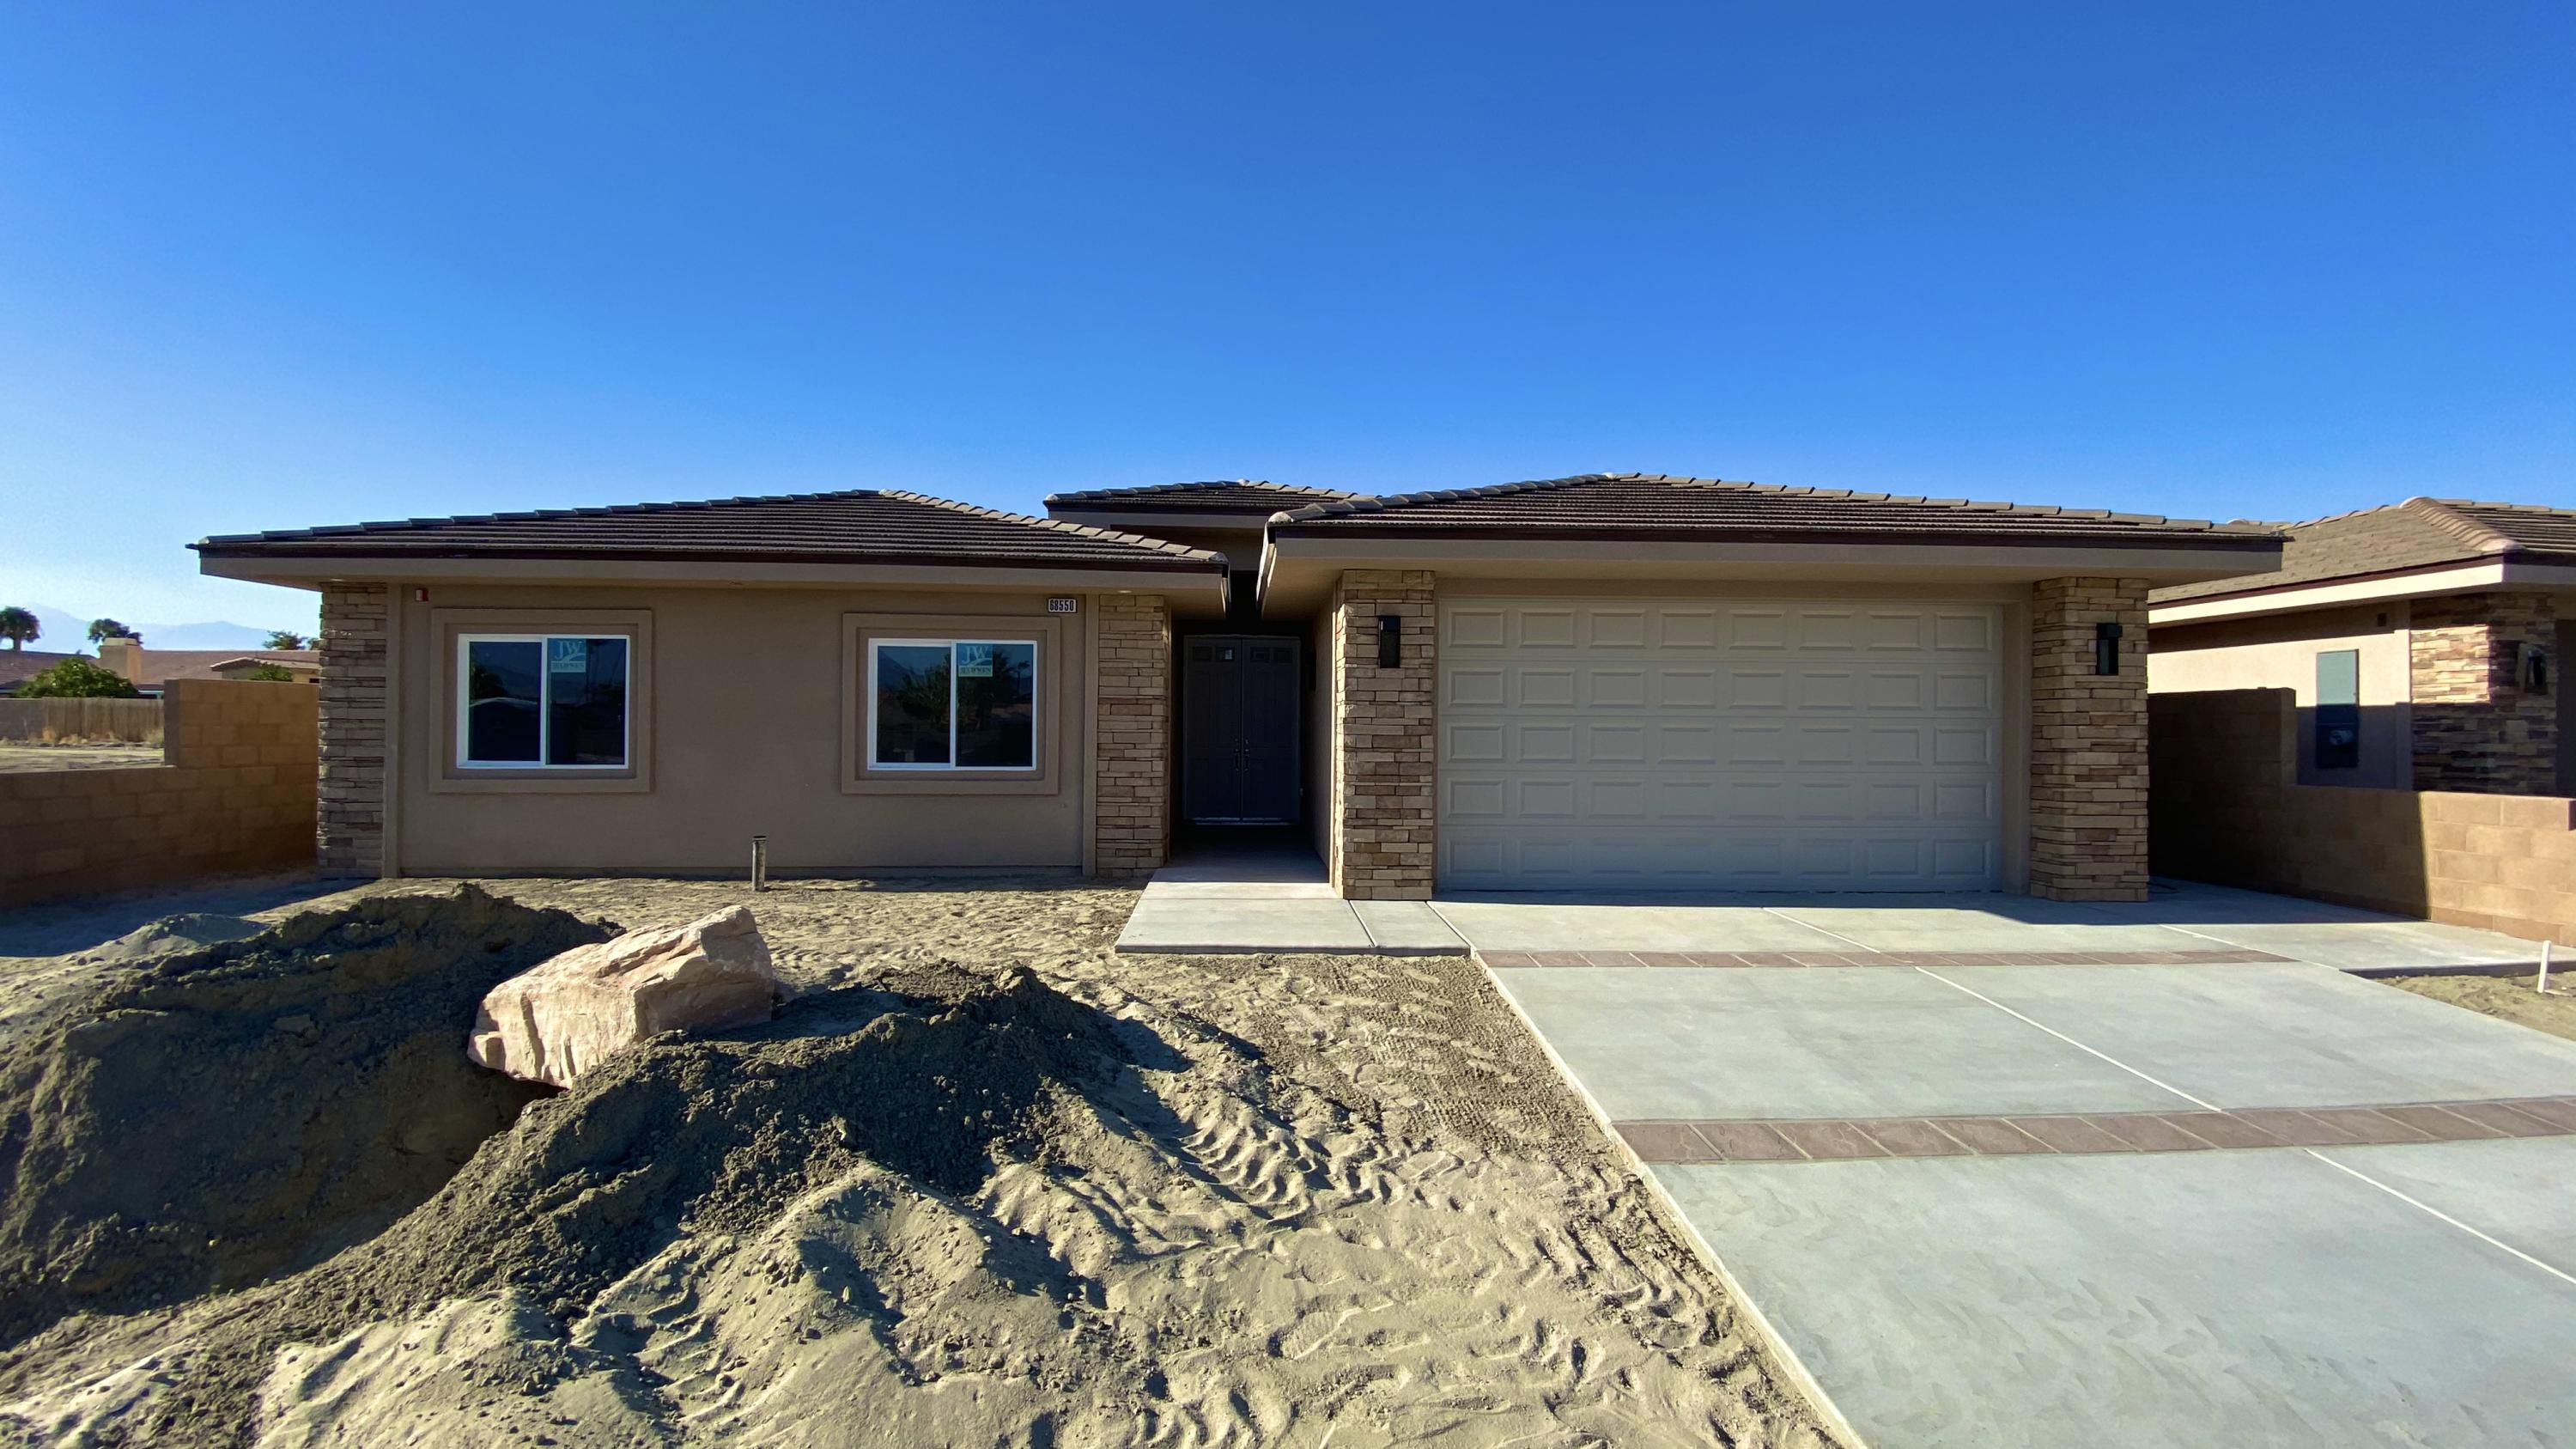 Photo of 68550 Verano Road, Cathedral City, CA 92234